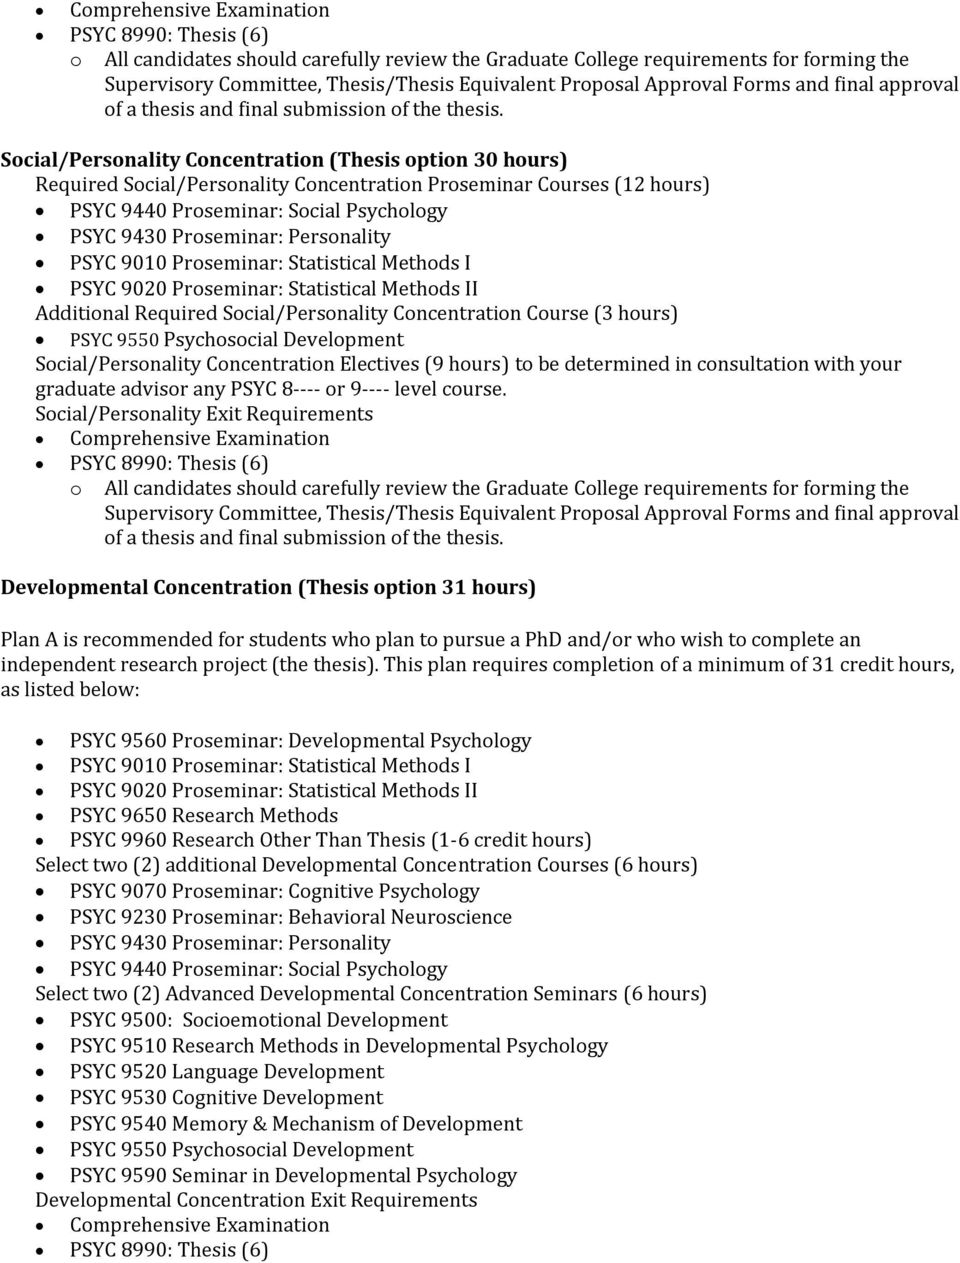 Social/Personality Concentration (Thesis option 30 hours) Required Social/Personality Concentration Proseminar Courses (12 hours) Additional Required Social/Personality Concentration Course (3 hours)